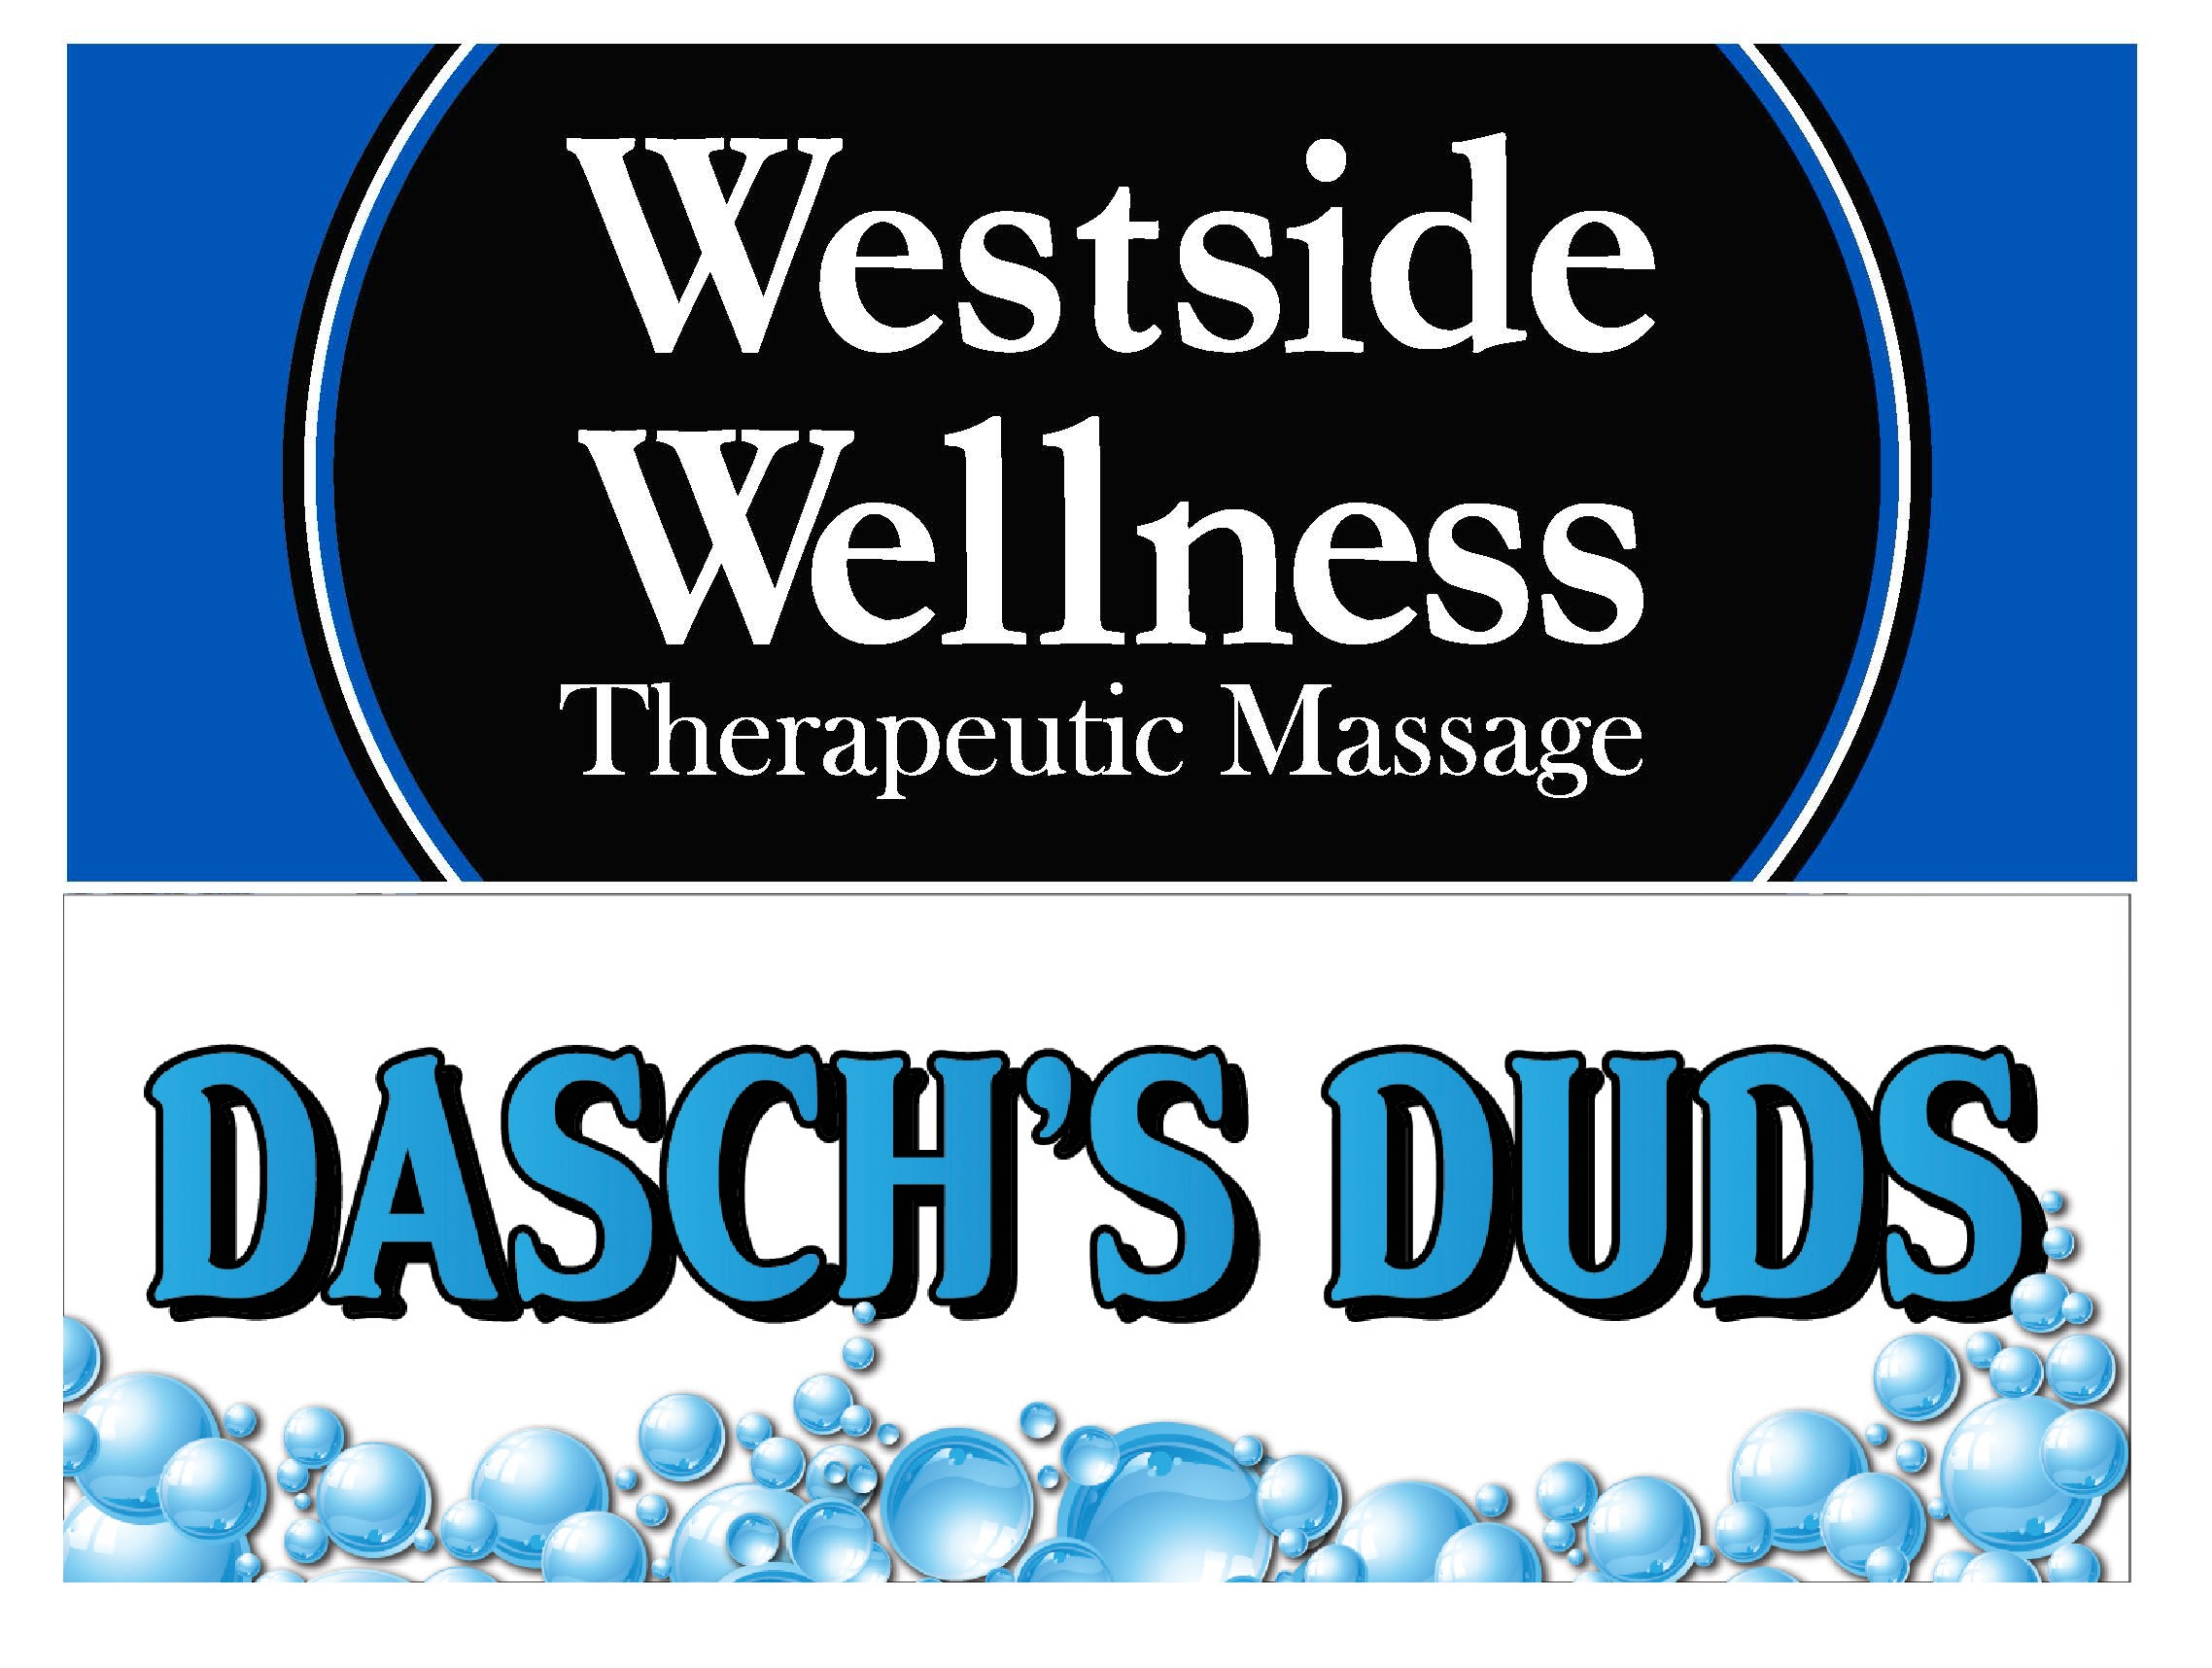 Westside Wellness and Dasch's Duds